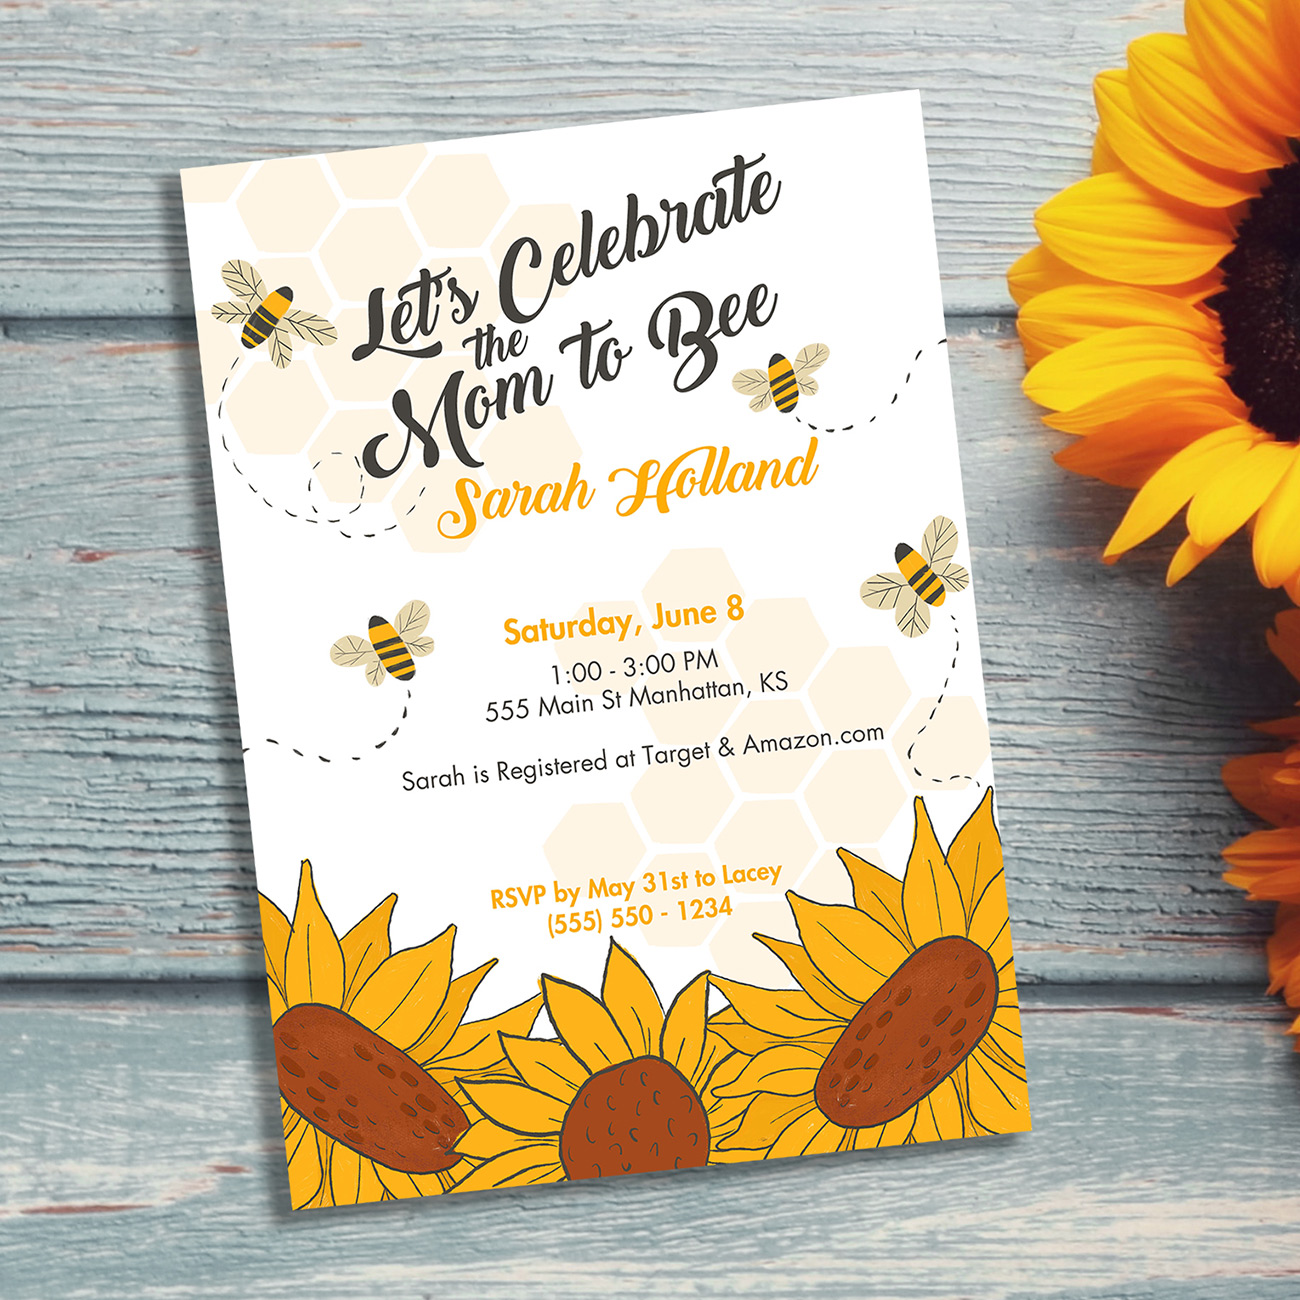 Let's Celebrat ethe Mom to Bee with this honey bee themed shower invitation.